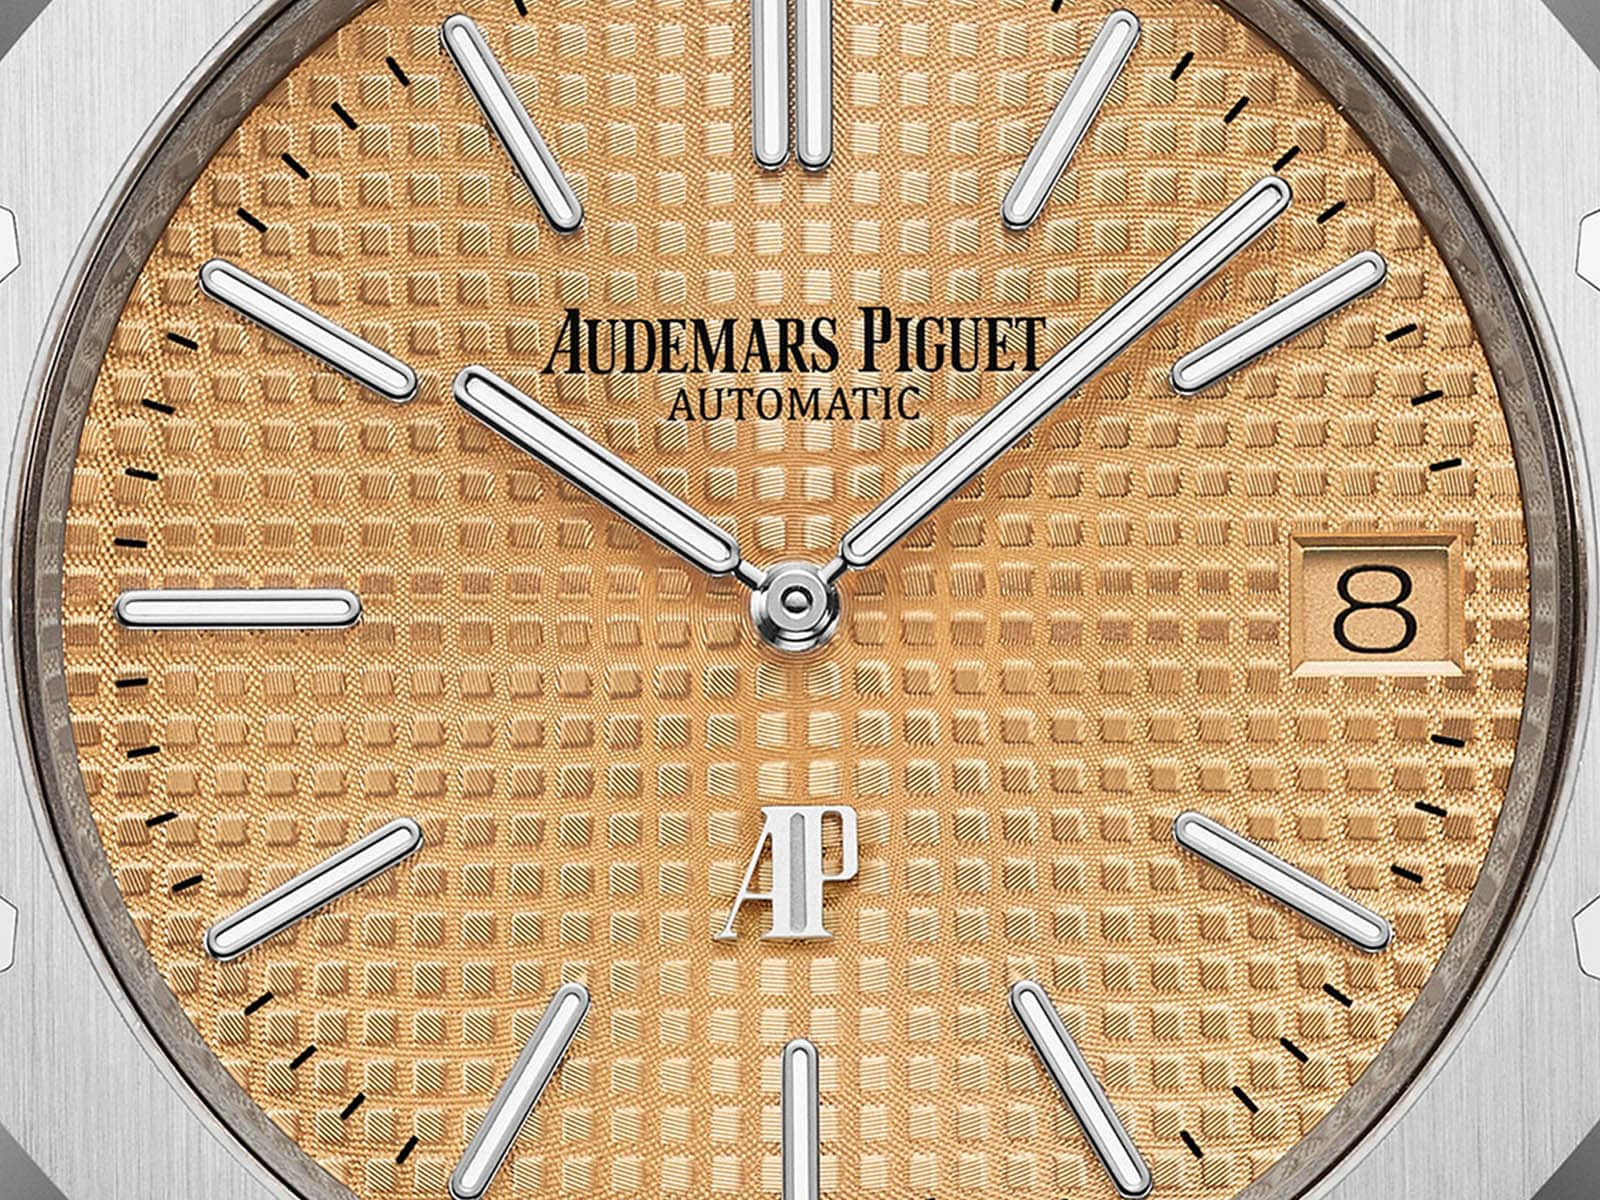 15202bc-oo-1240bc-01-audemars-piguet-royal-oak-jumbo-extra-thin-3.jpg